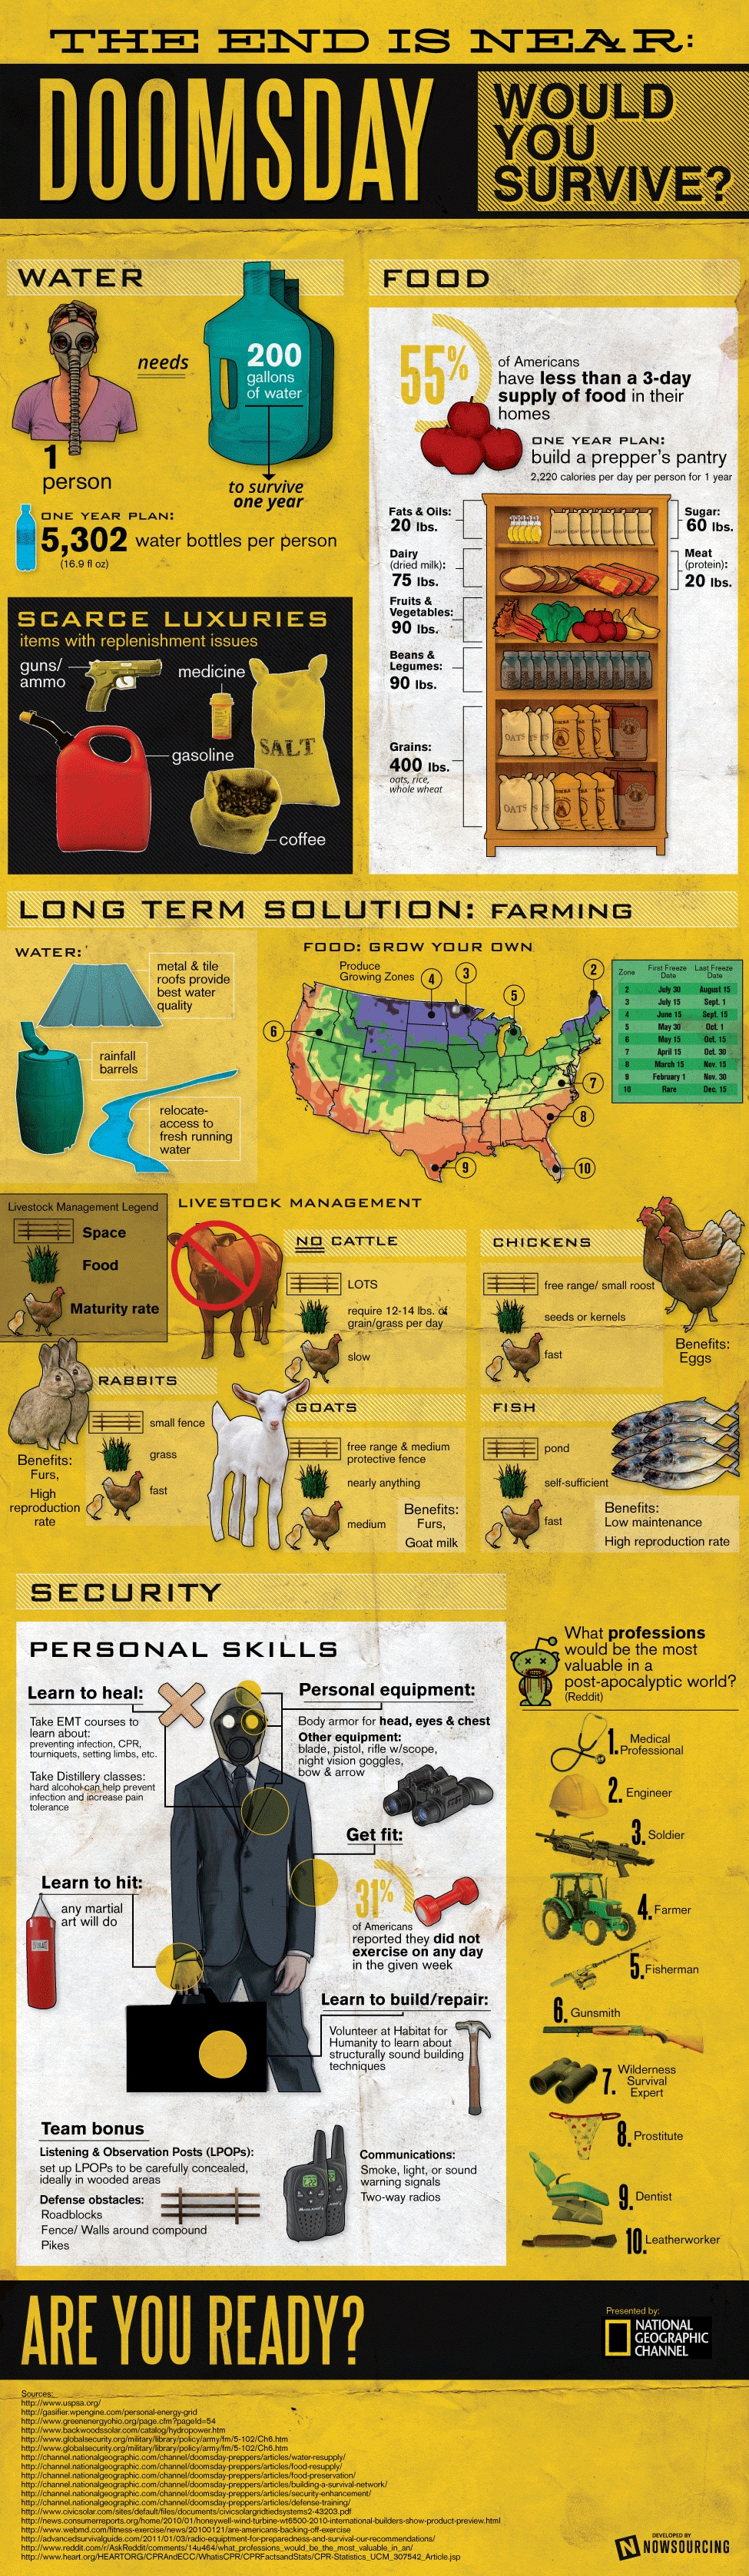 doomsday-prepper-survival-guide-infographic